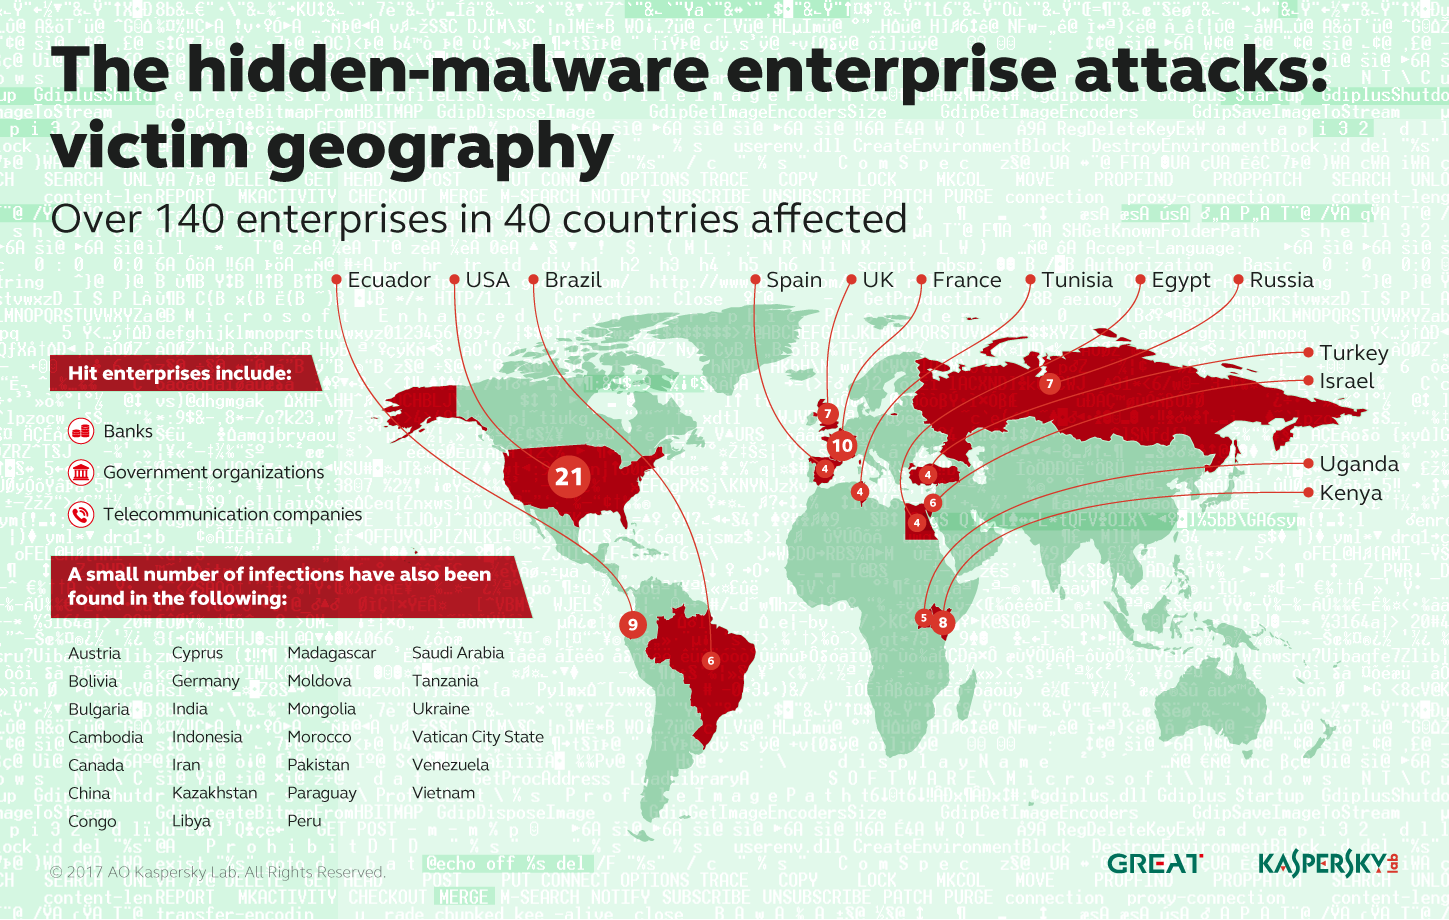 The Hidden-Malware Enterprise Attacks: Victim Geography